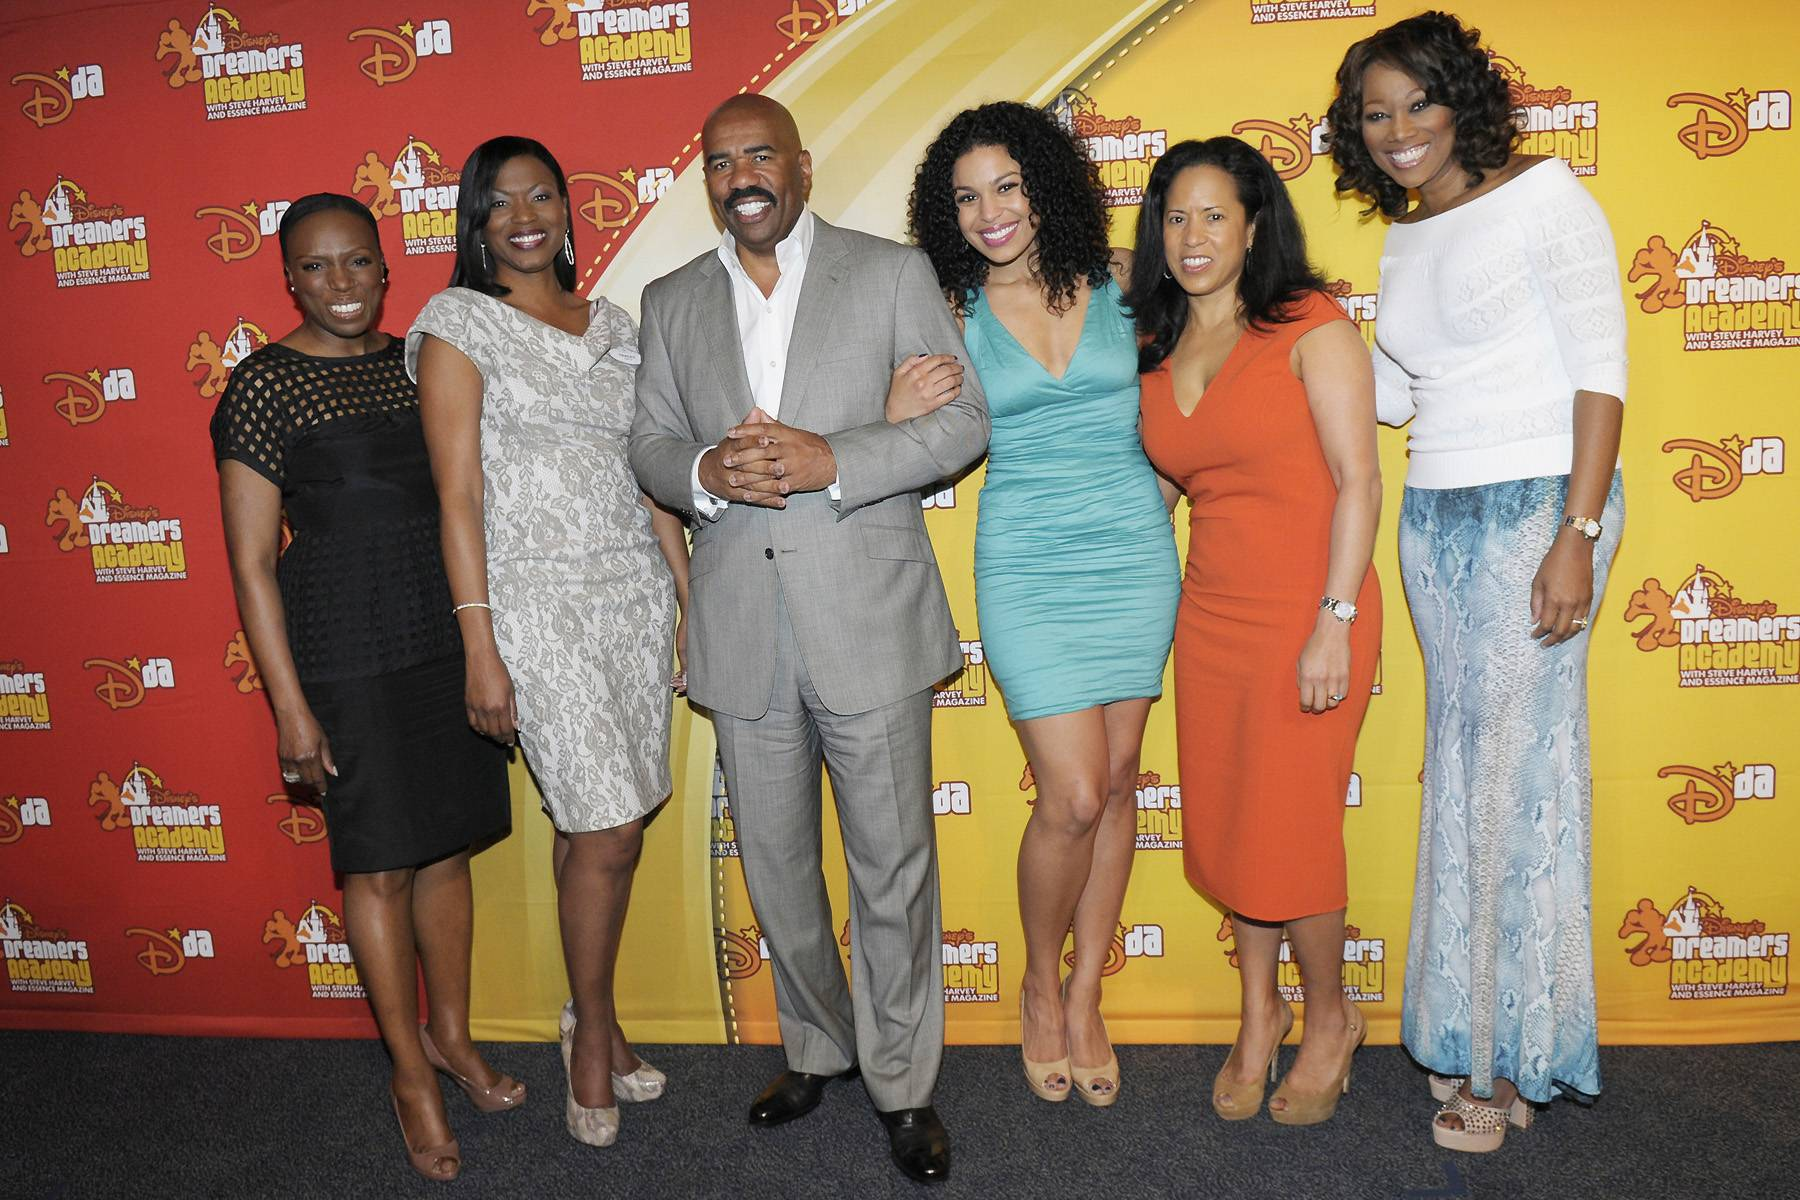 Power Posse - Steve Harvey poses with Mikki Taylor, editor-at-large for Essence magazine; Tracey D. Powell, Disney executive champion of Disney's Dreamers Academy; American Idol?s Jordin Sparks; Michelle Ebanks, president of Essence Communications; and gospel singer Yolanda Adams during the Dreamers Academy commencement ceremony on March 11. (Photo: Phelan Ebenhack)